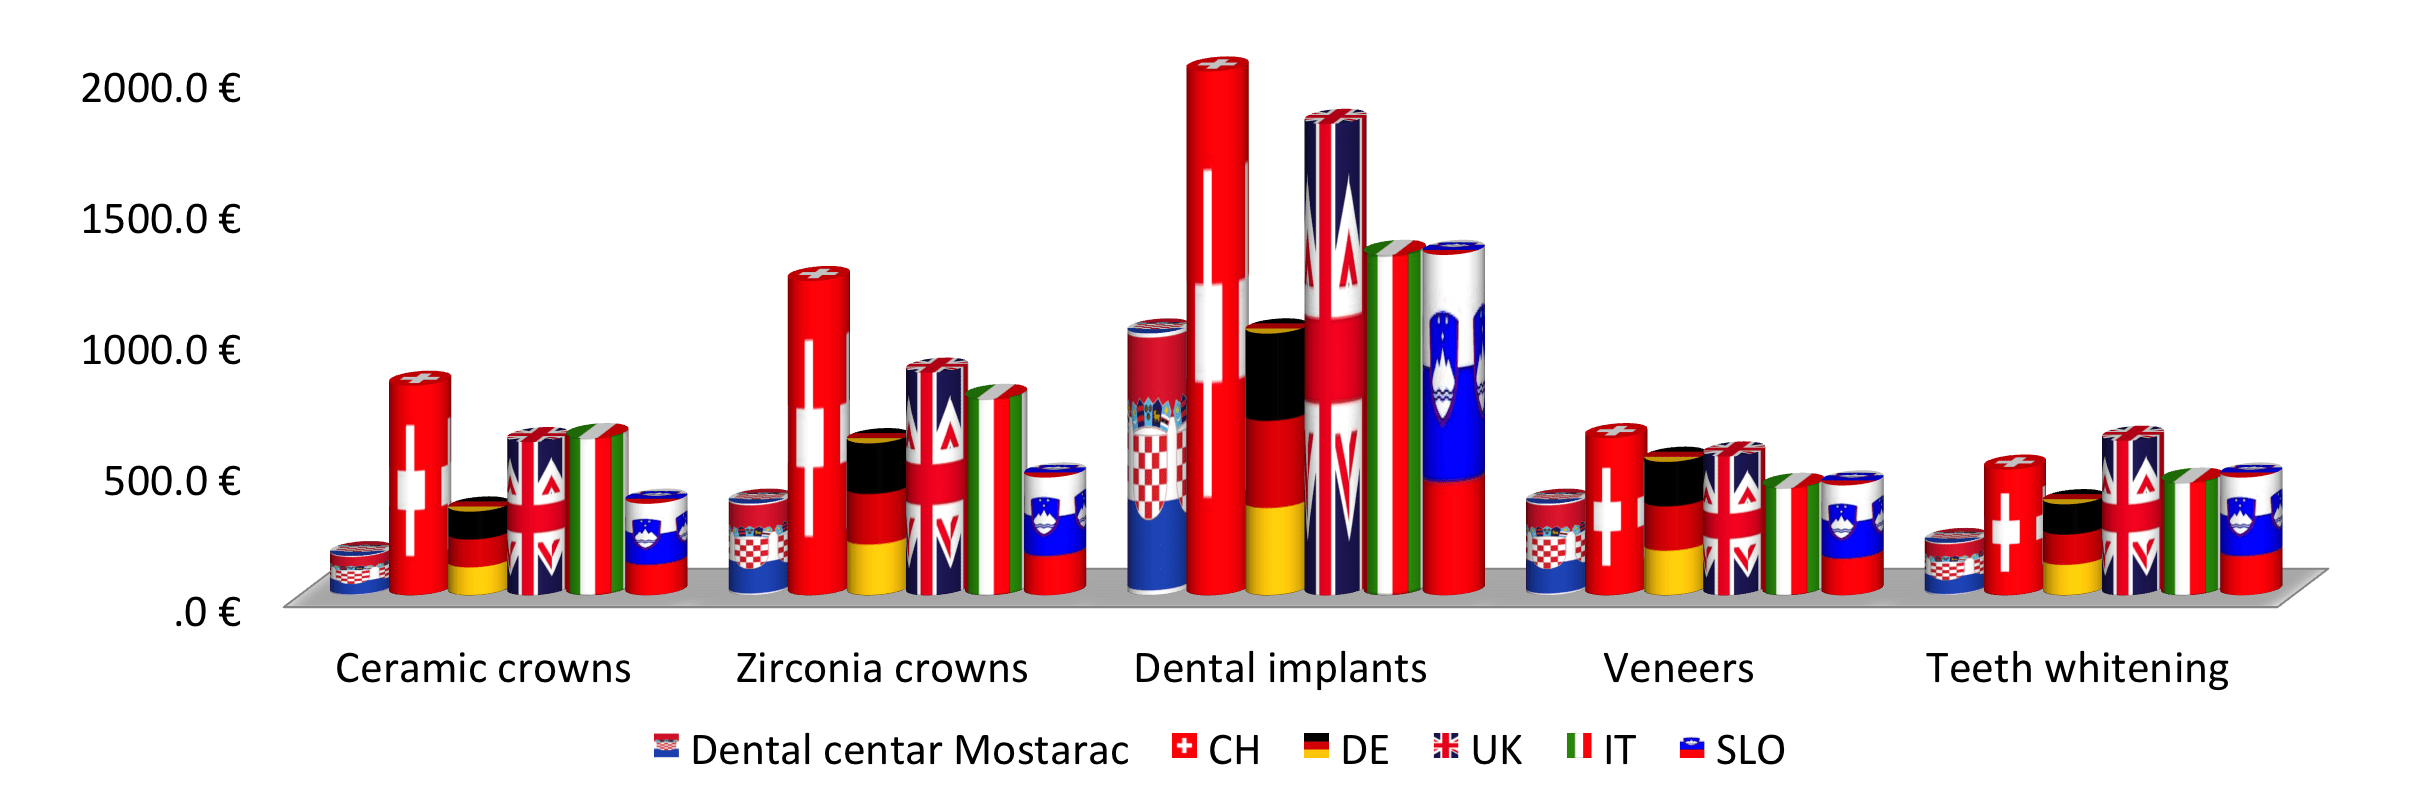 prices-dental tourism